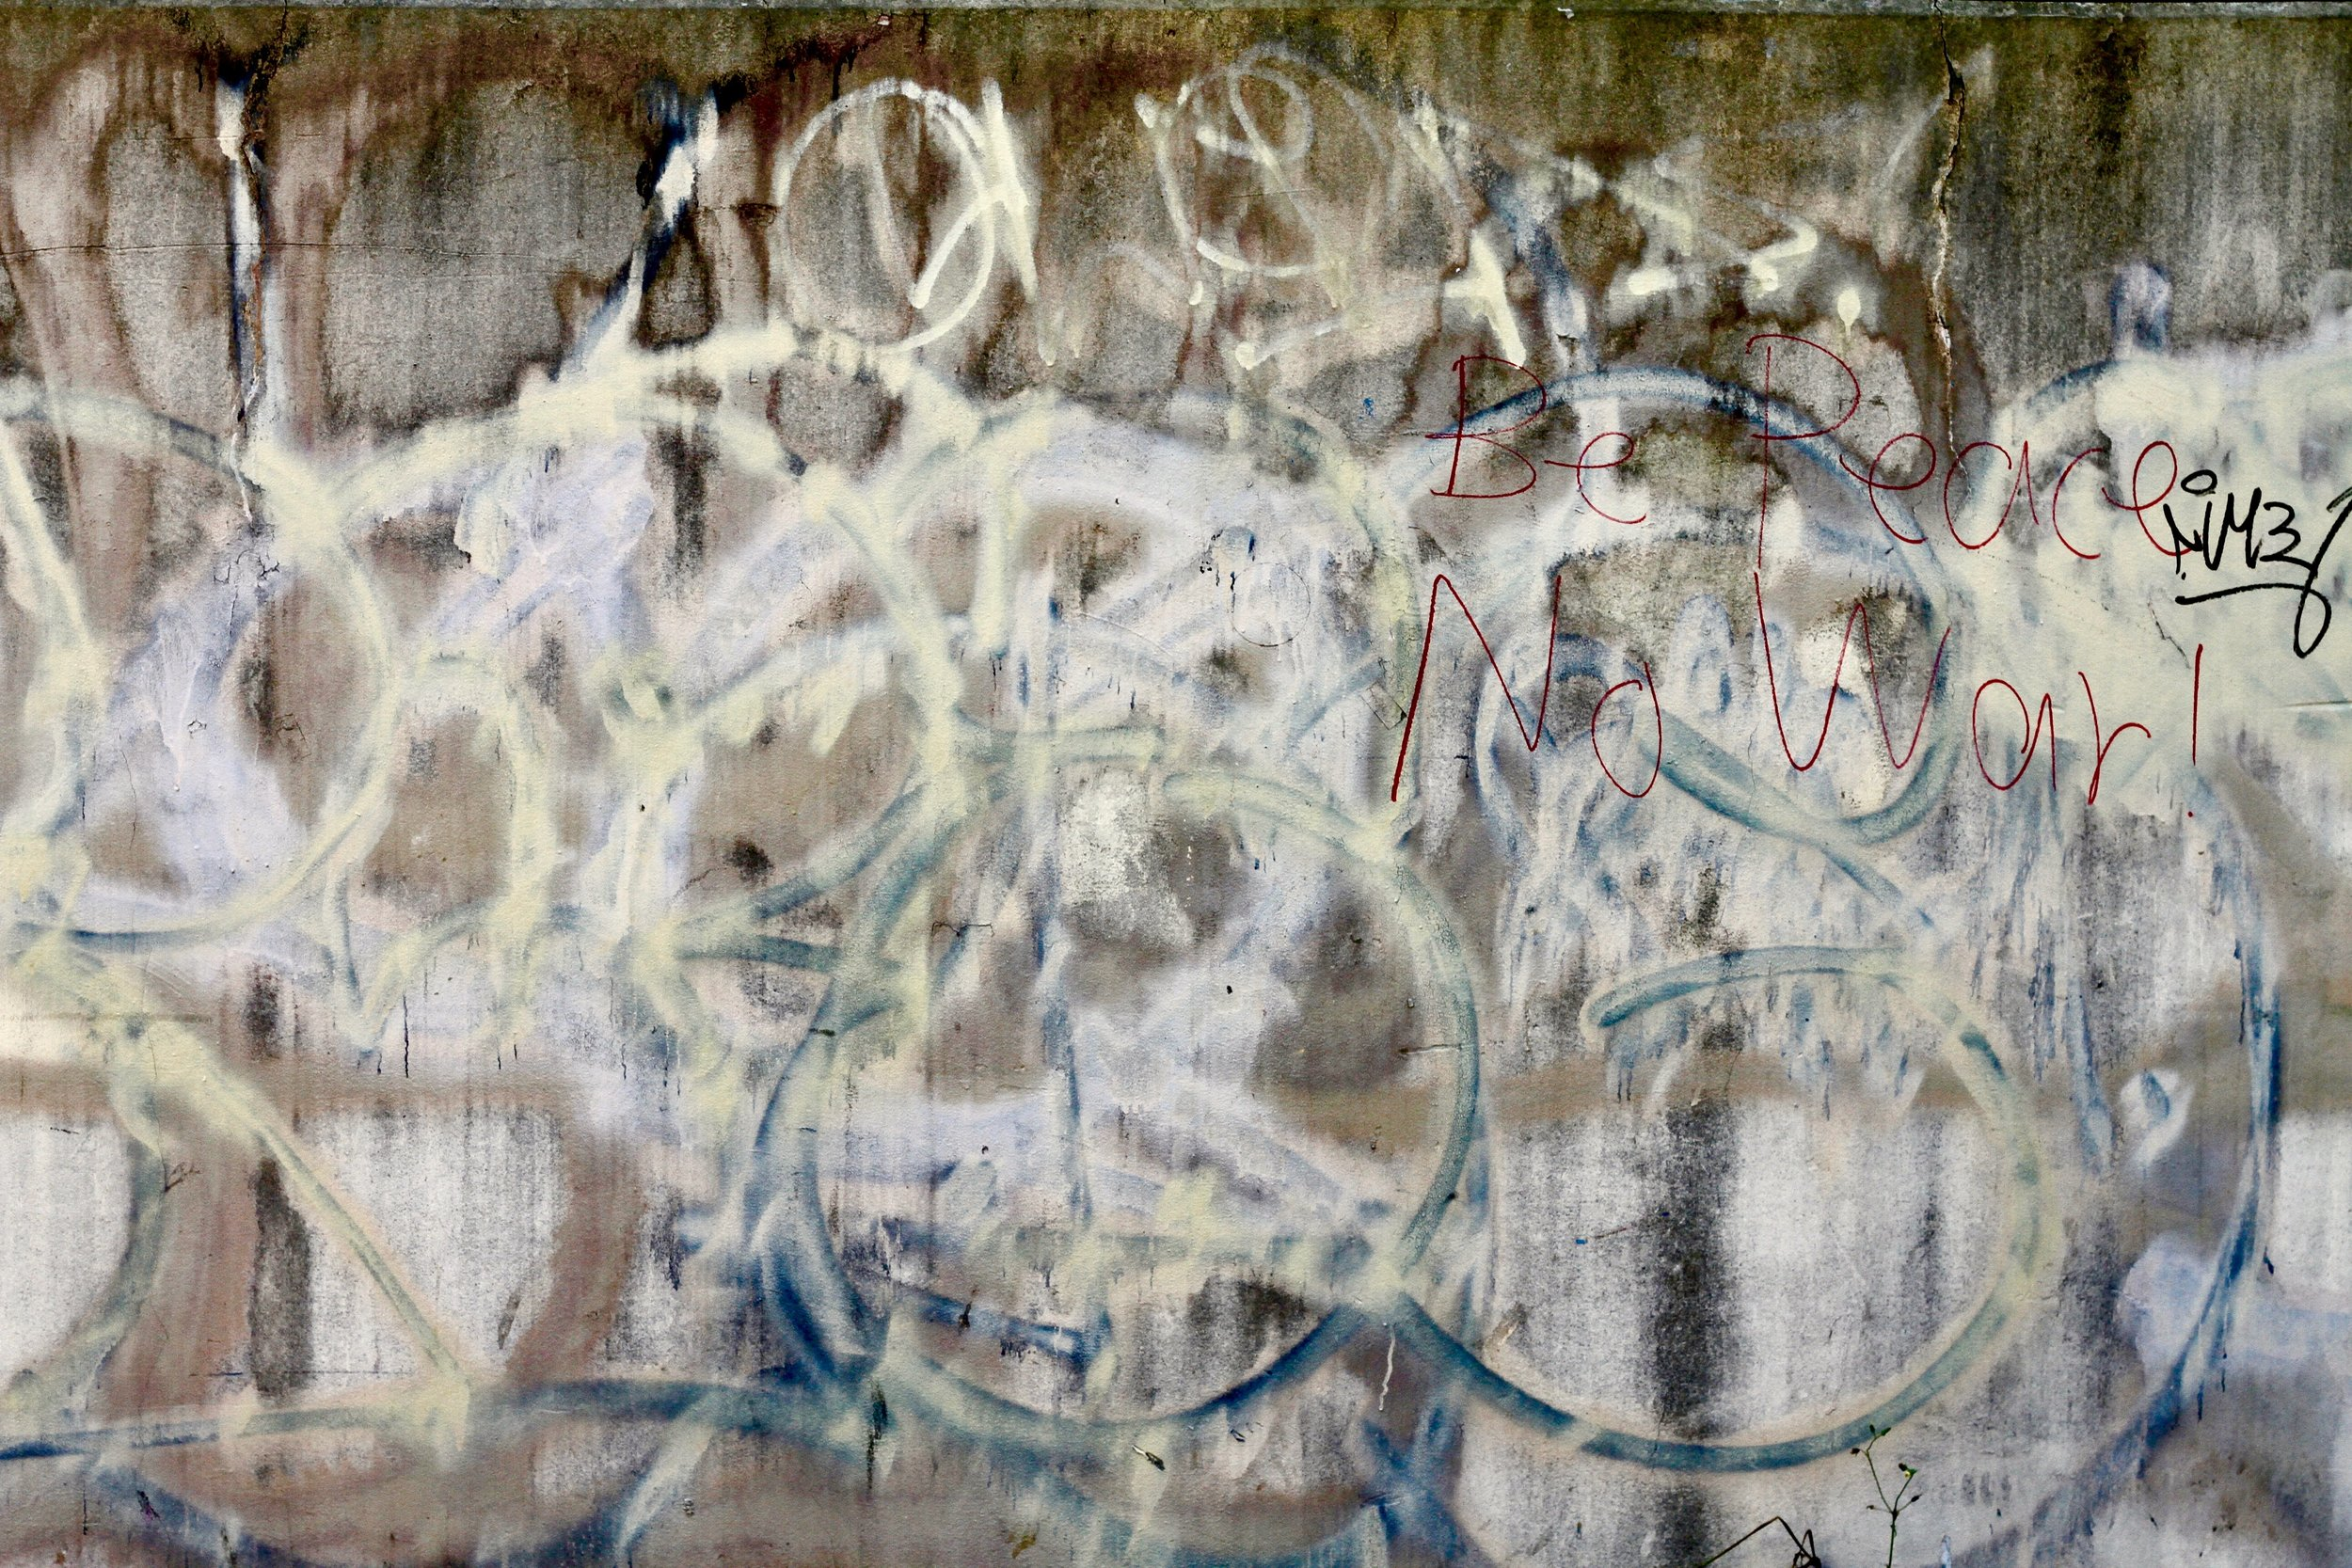 Paint, air, time and ink on wall.  Anonymous. Tokyo 2019